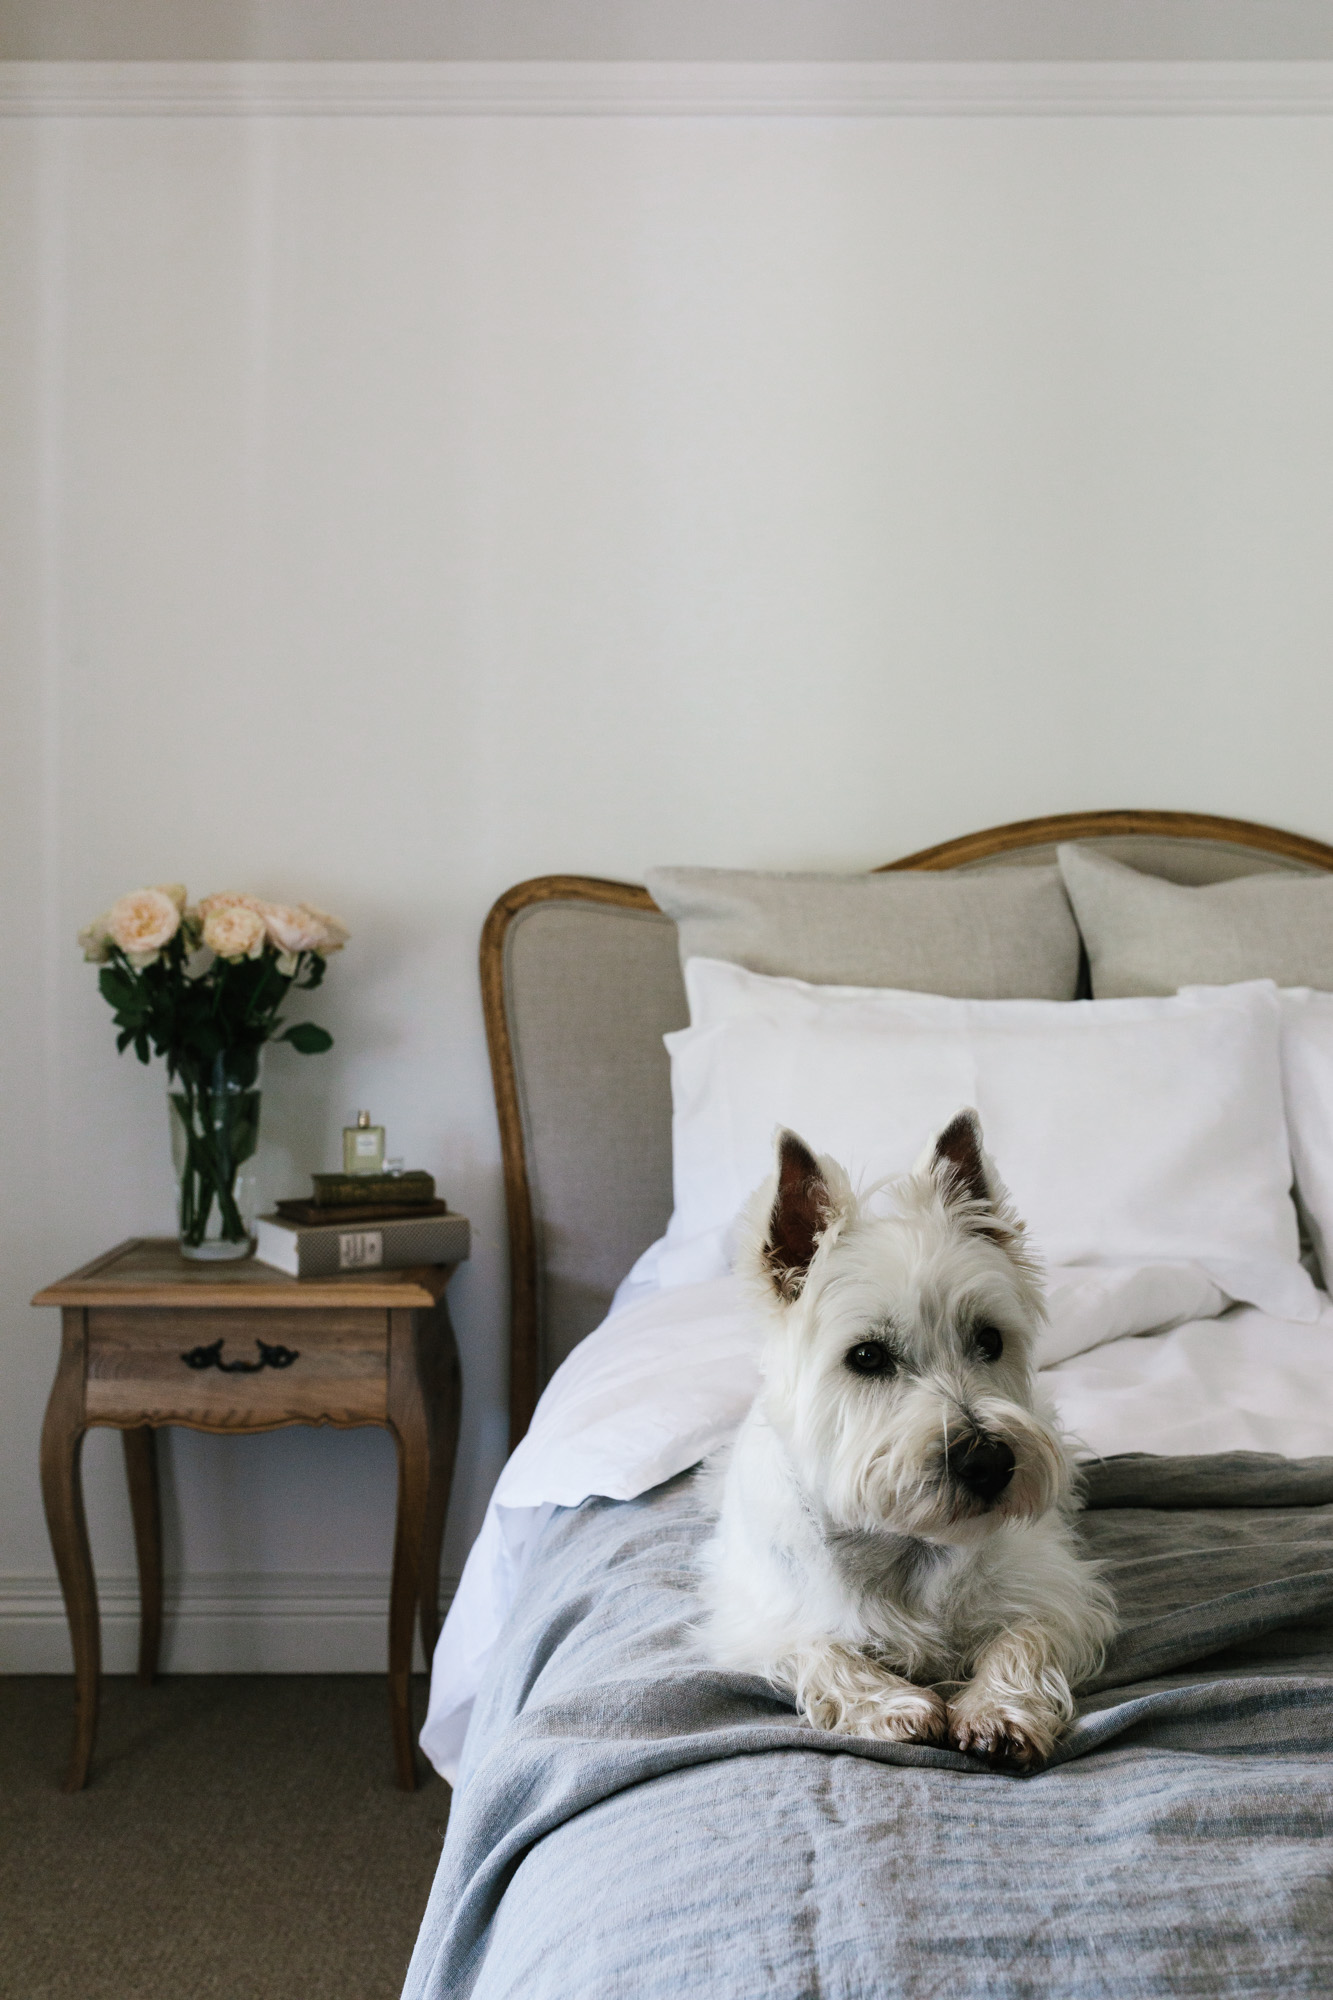 Marnie Hawson, Melbourne interior photographer, for Laura Sheilds and Country Style magazine